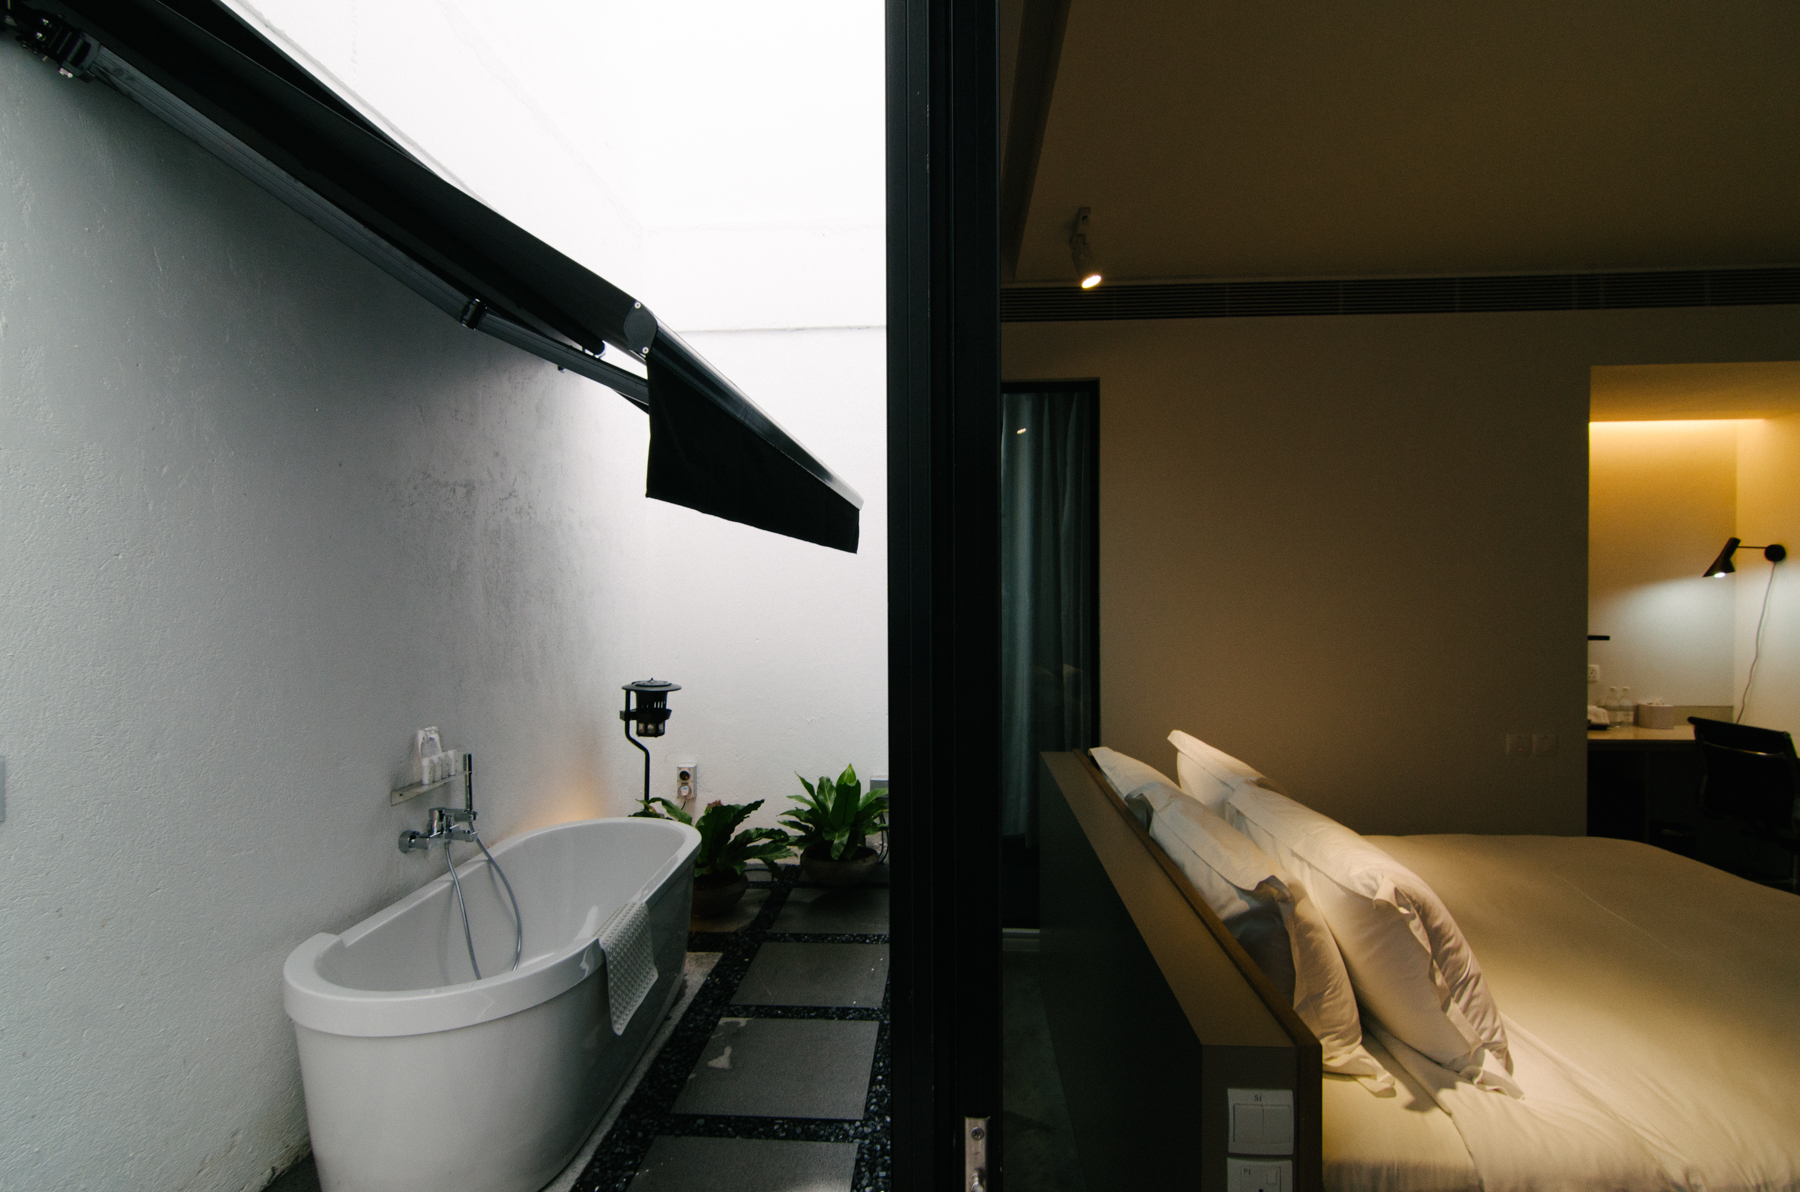 Hotel Review Lloyds Inn Singapore The Shutterwhale